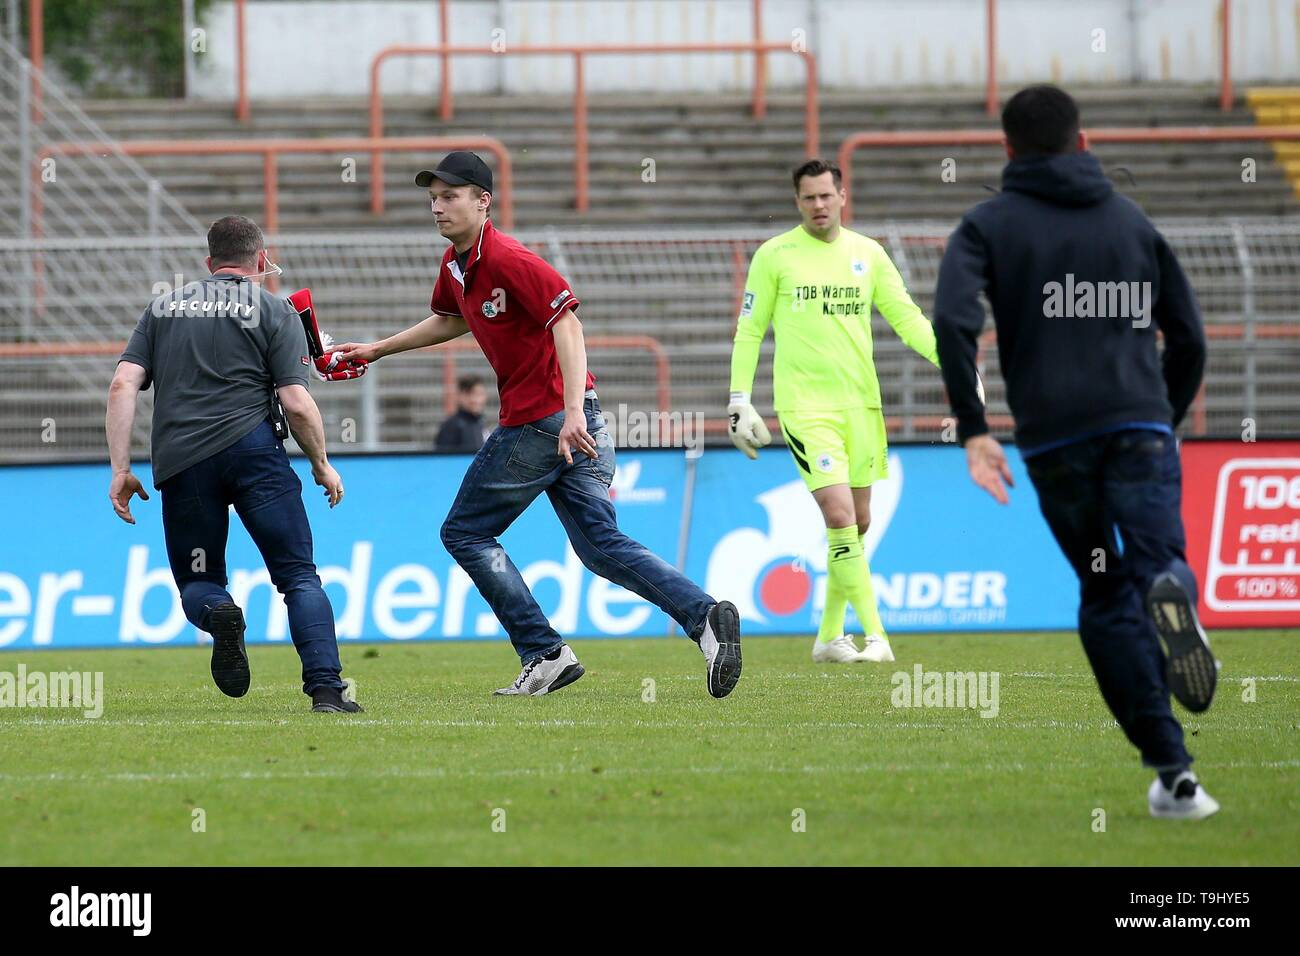 Oberhausen, Germany. 18th May, 2019. firo: 18.05.2019 Football, Regionalliga West, season 2018/2019 Rot-Weiss Oberhausen - SC Verl The security is behind the racer. | usage worldwide Credit: dpa/Alamy Live News - Stock Image